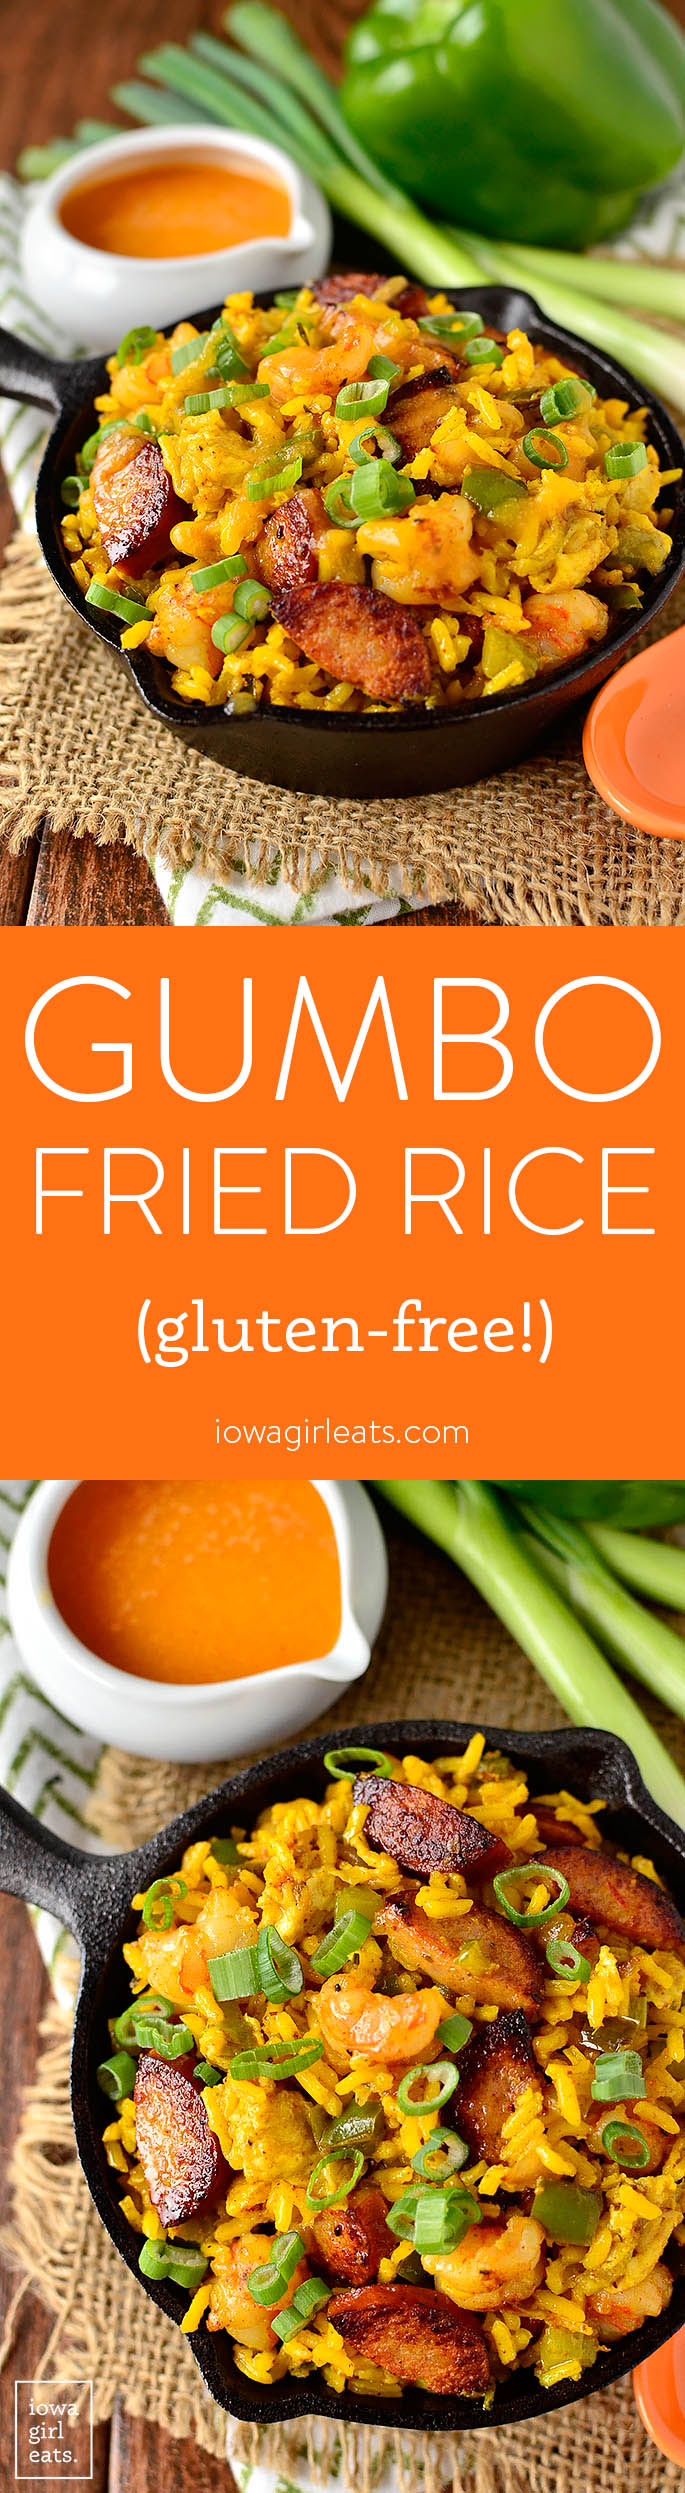 Gumbo Fried Rice gives you those signature southern flavors in way less time than it takes to boil a pot of gumbo! | iowagirleats.com